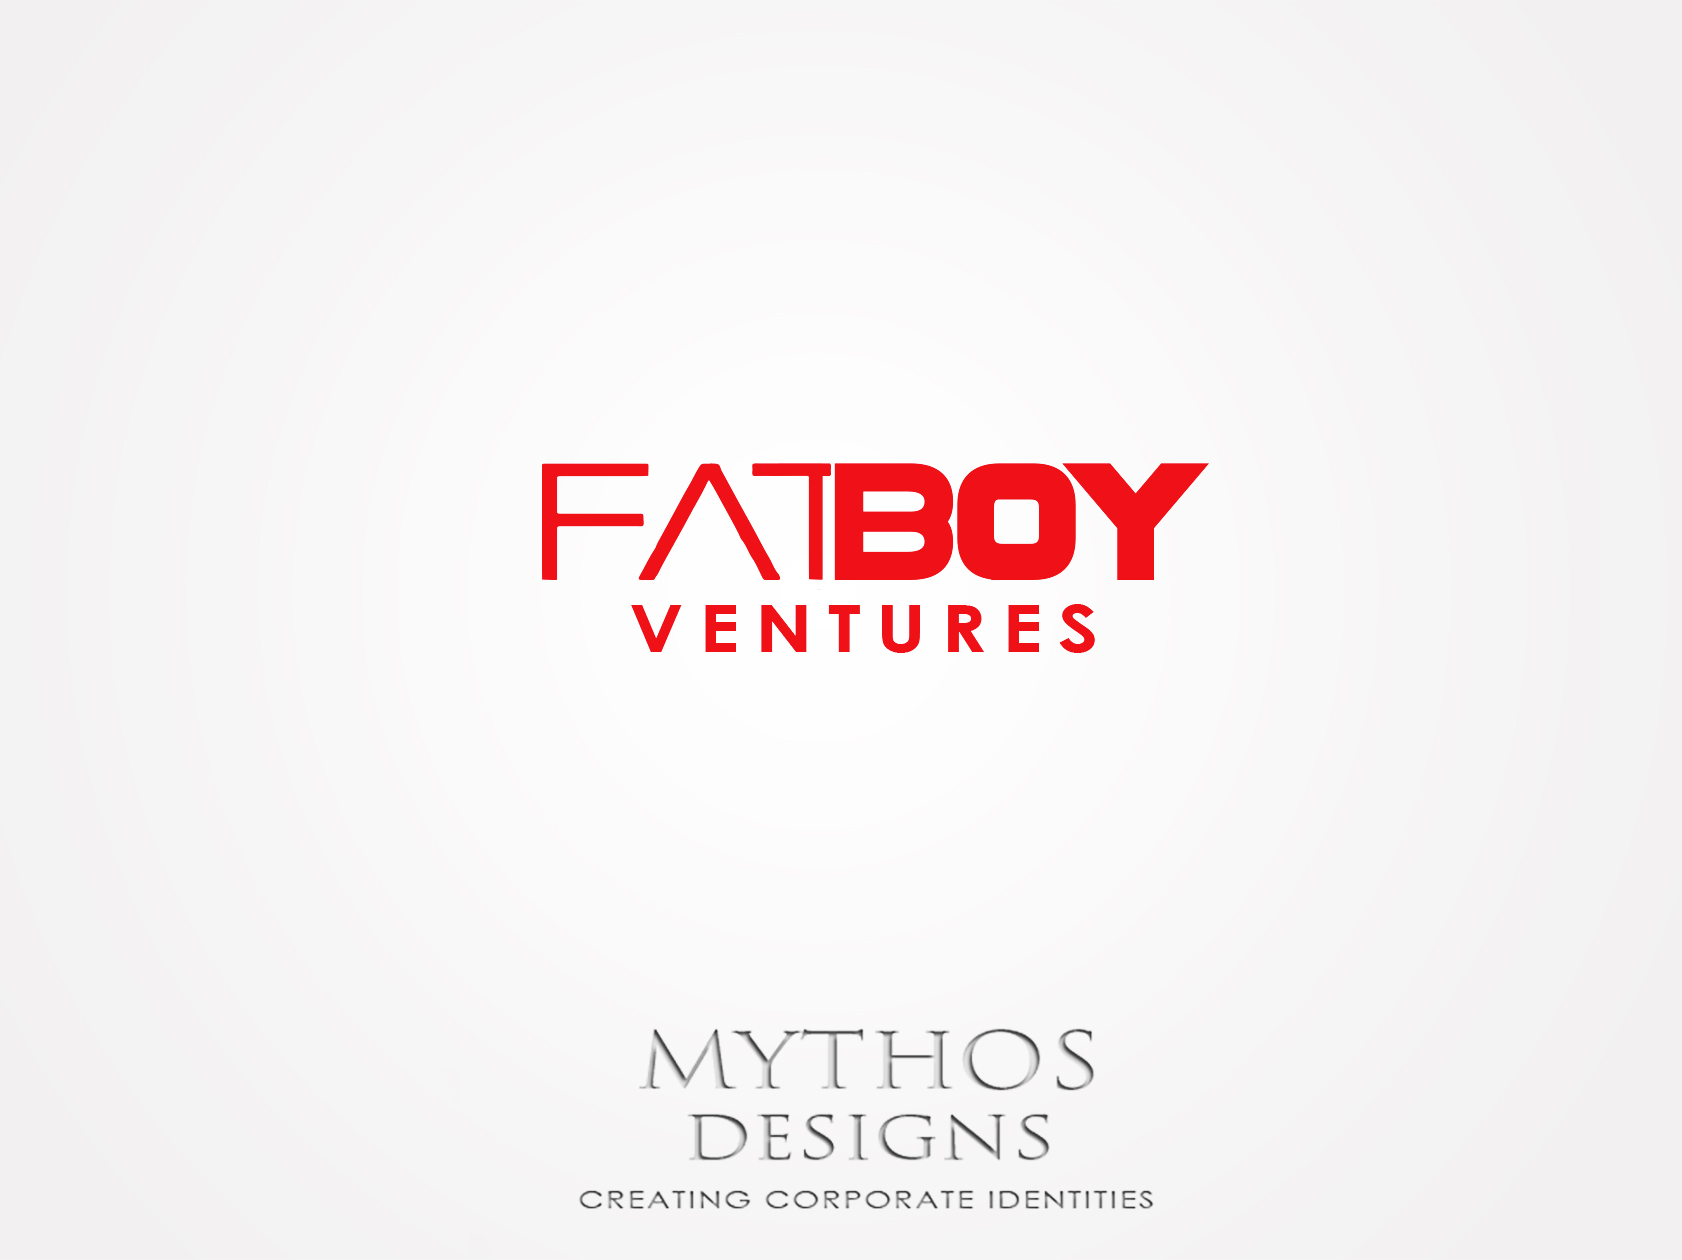 Logo Design by Mythos Designs - Entry No. 130 in the Logo Design Contest Fun Logo Design for Fat Boy Ventures.